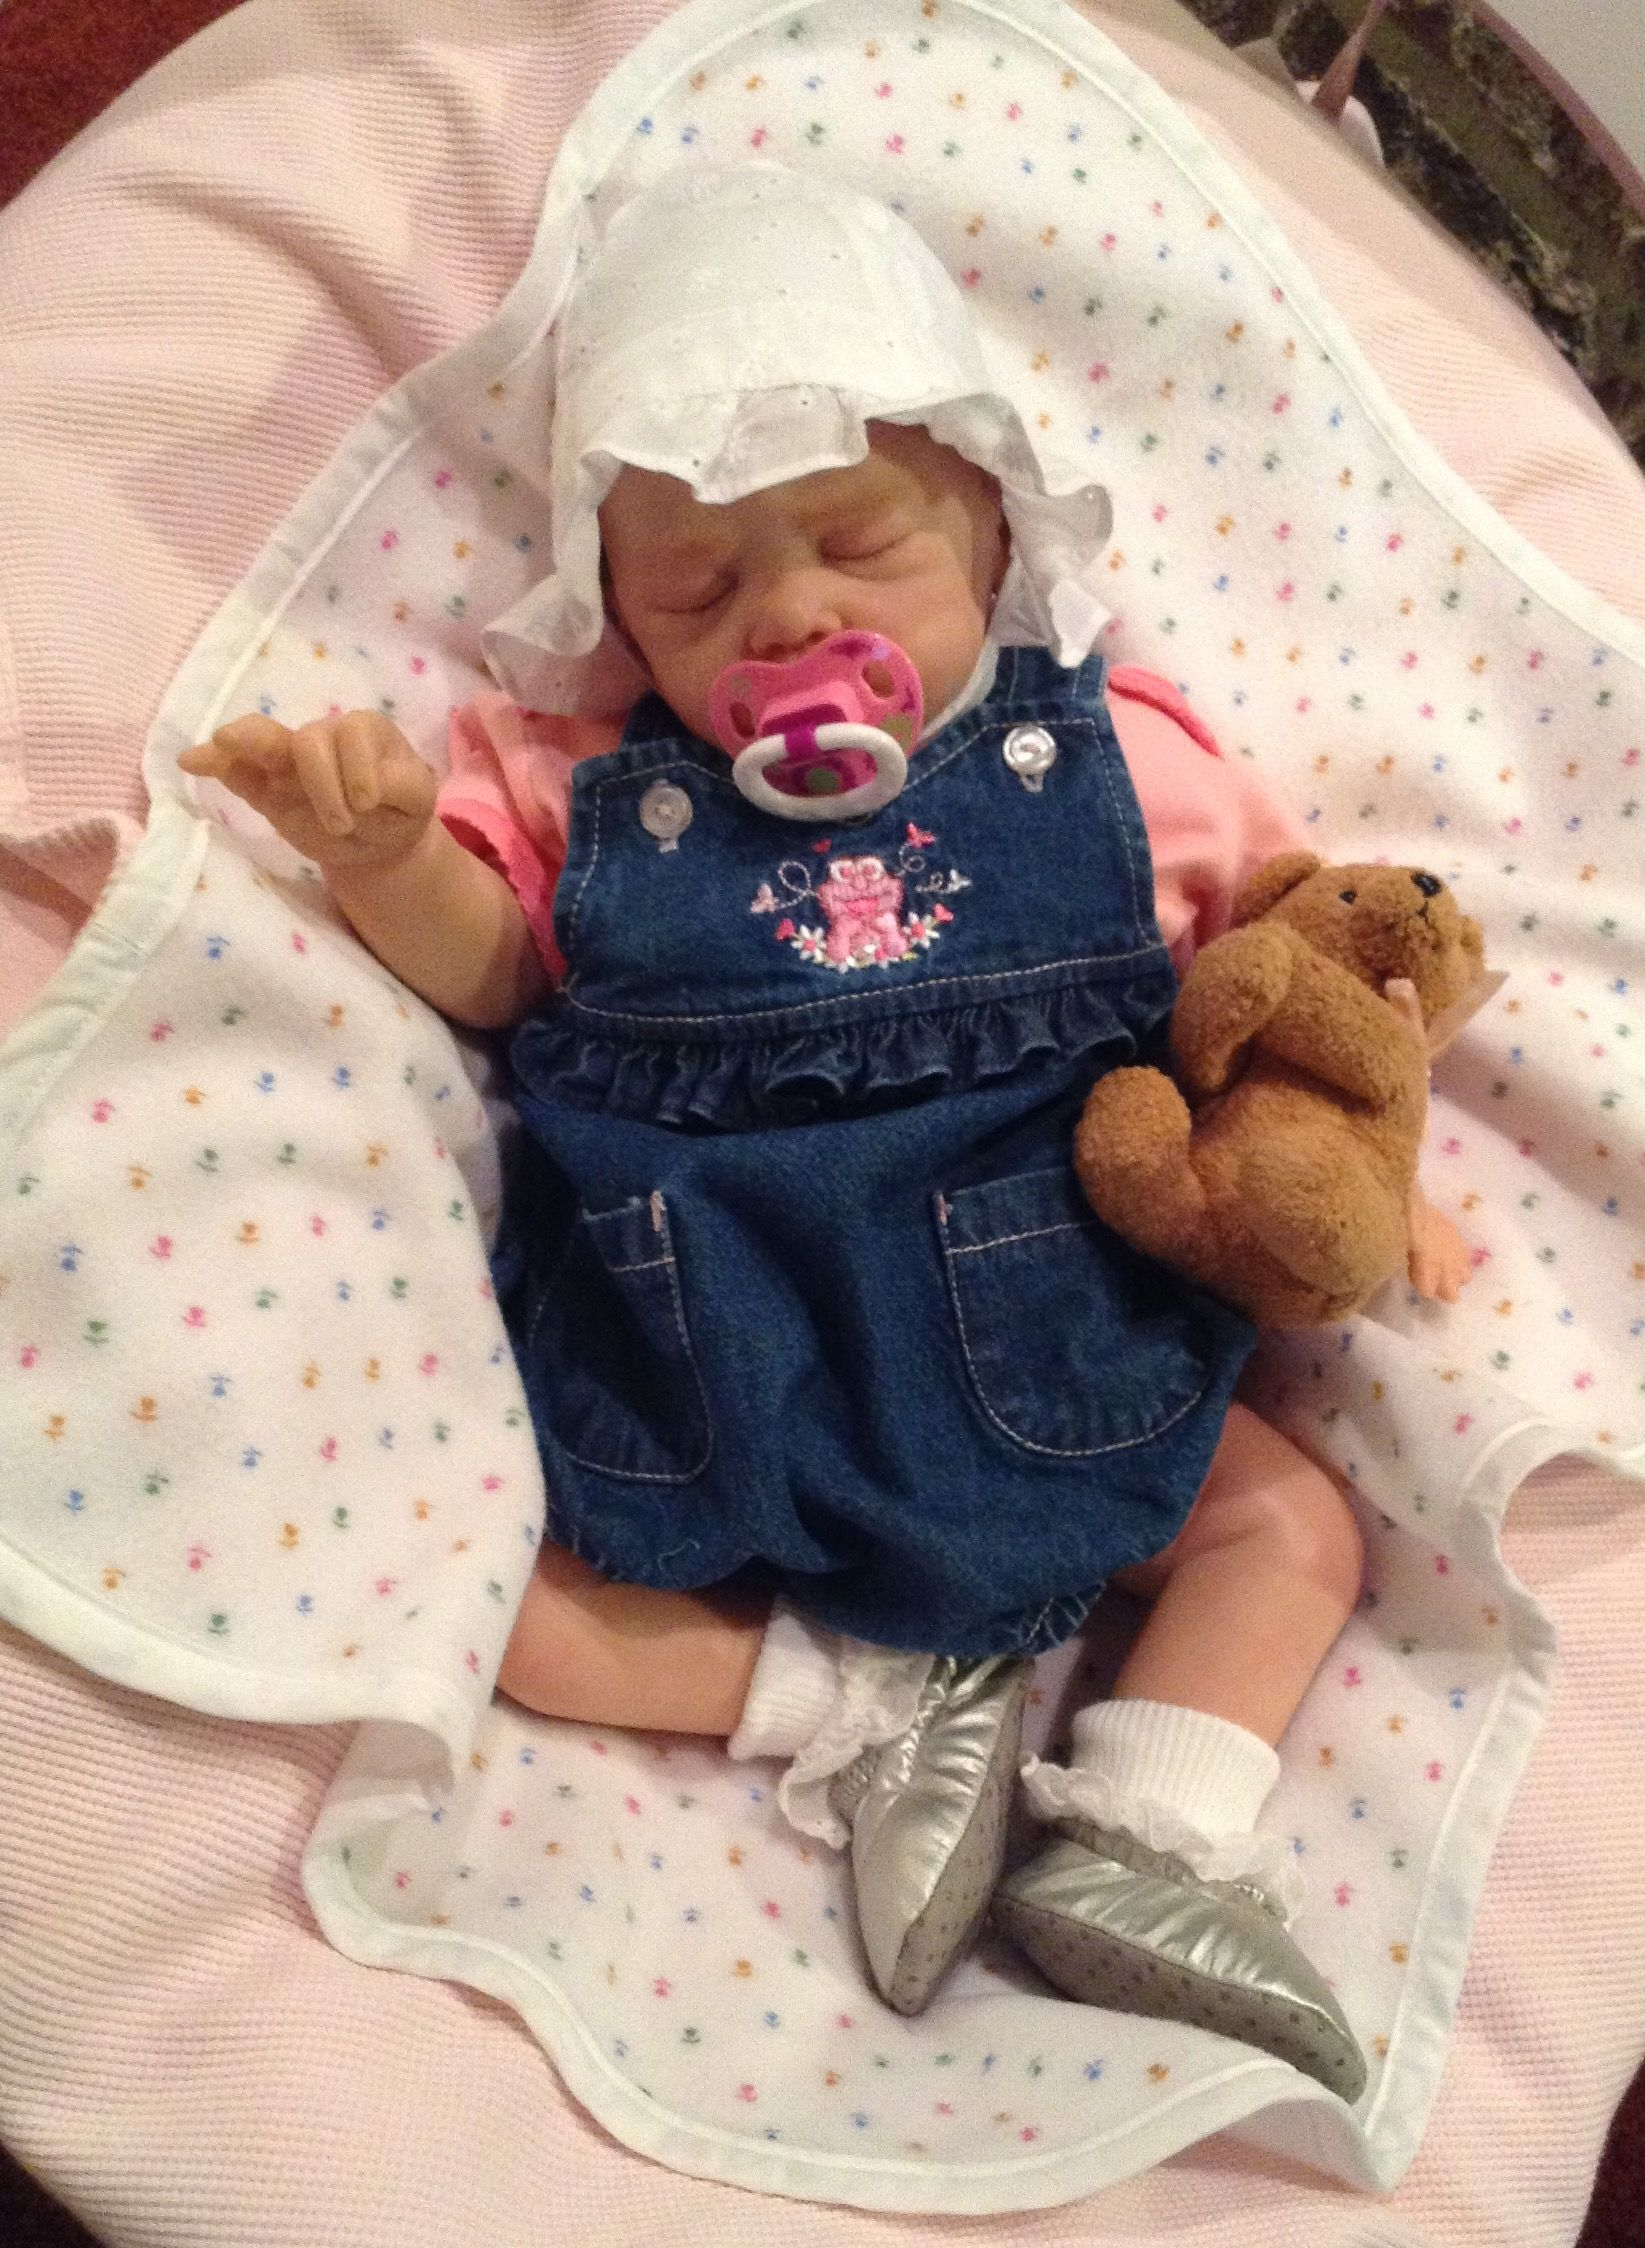 Lillie Beth, reborn baby doll,  dressed for day camp with Mommy and Daddy. In denim overall romper and eyelet bonnet, matched with eyelet trimmed socks, she will be cool and comfy in the out of doors